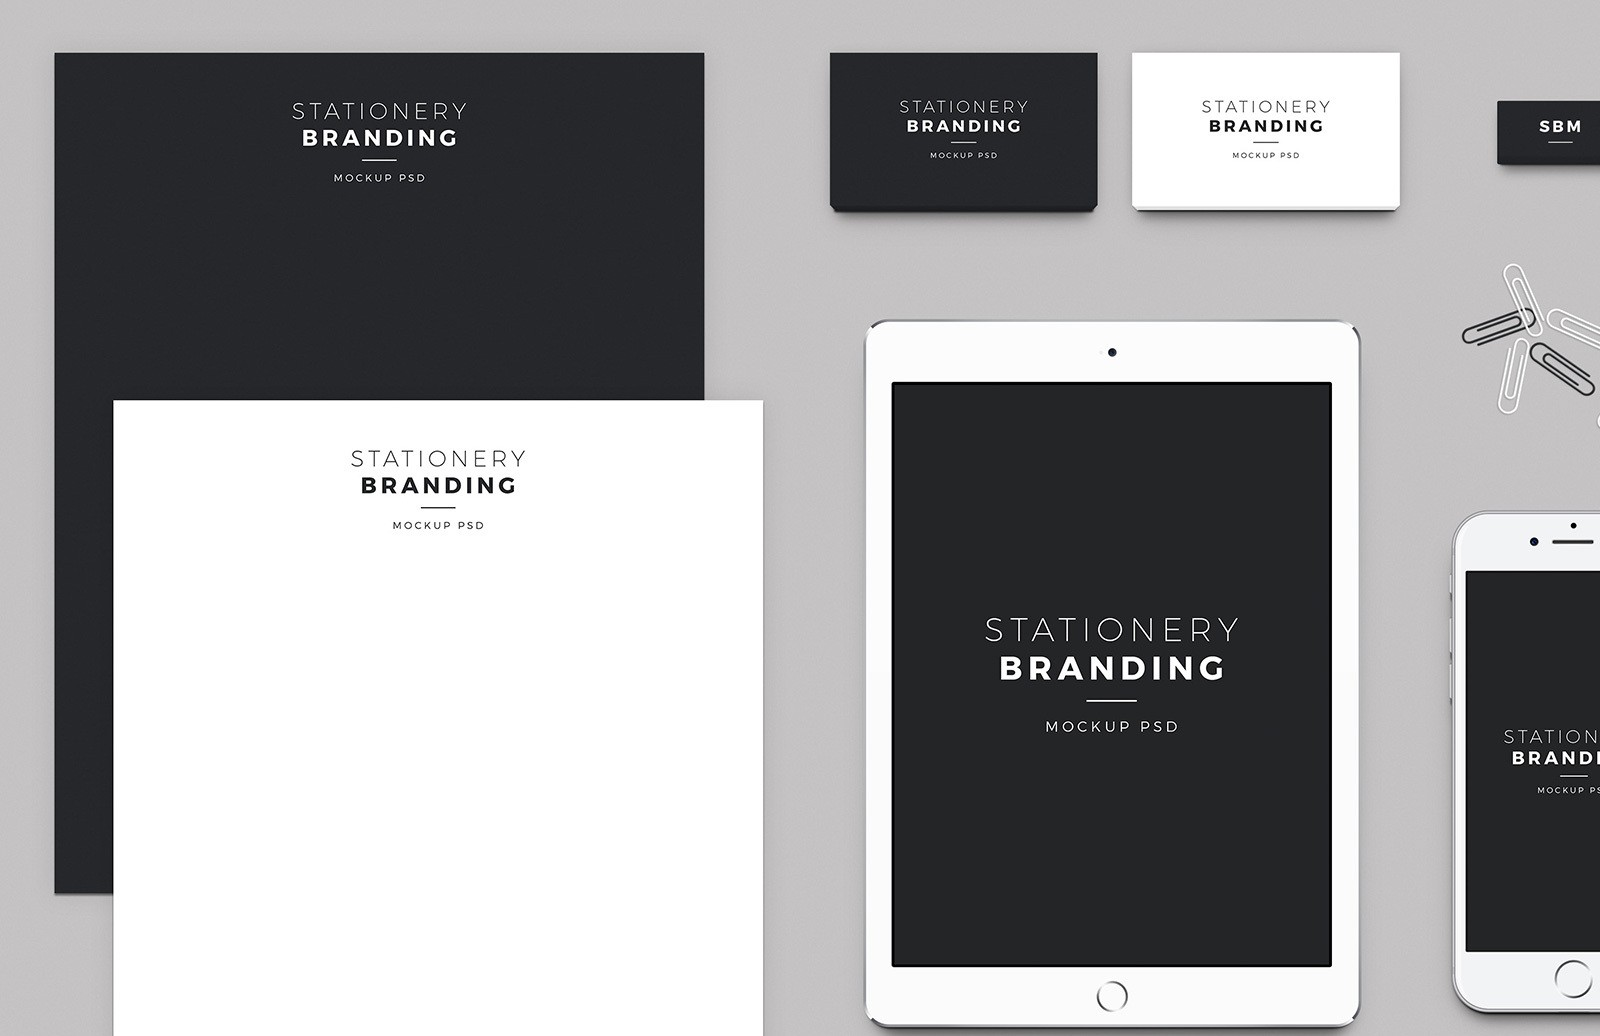 Free Stationery Branding Mockup Pack 2